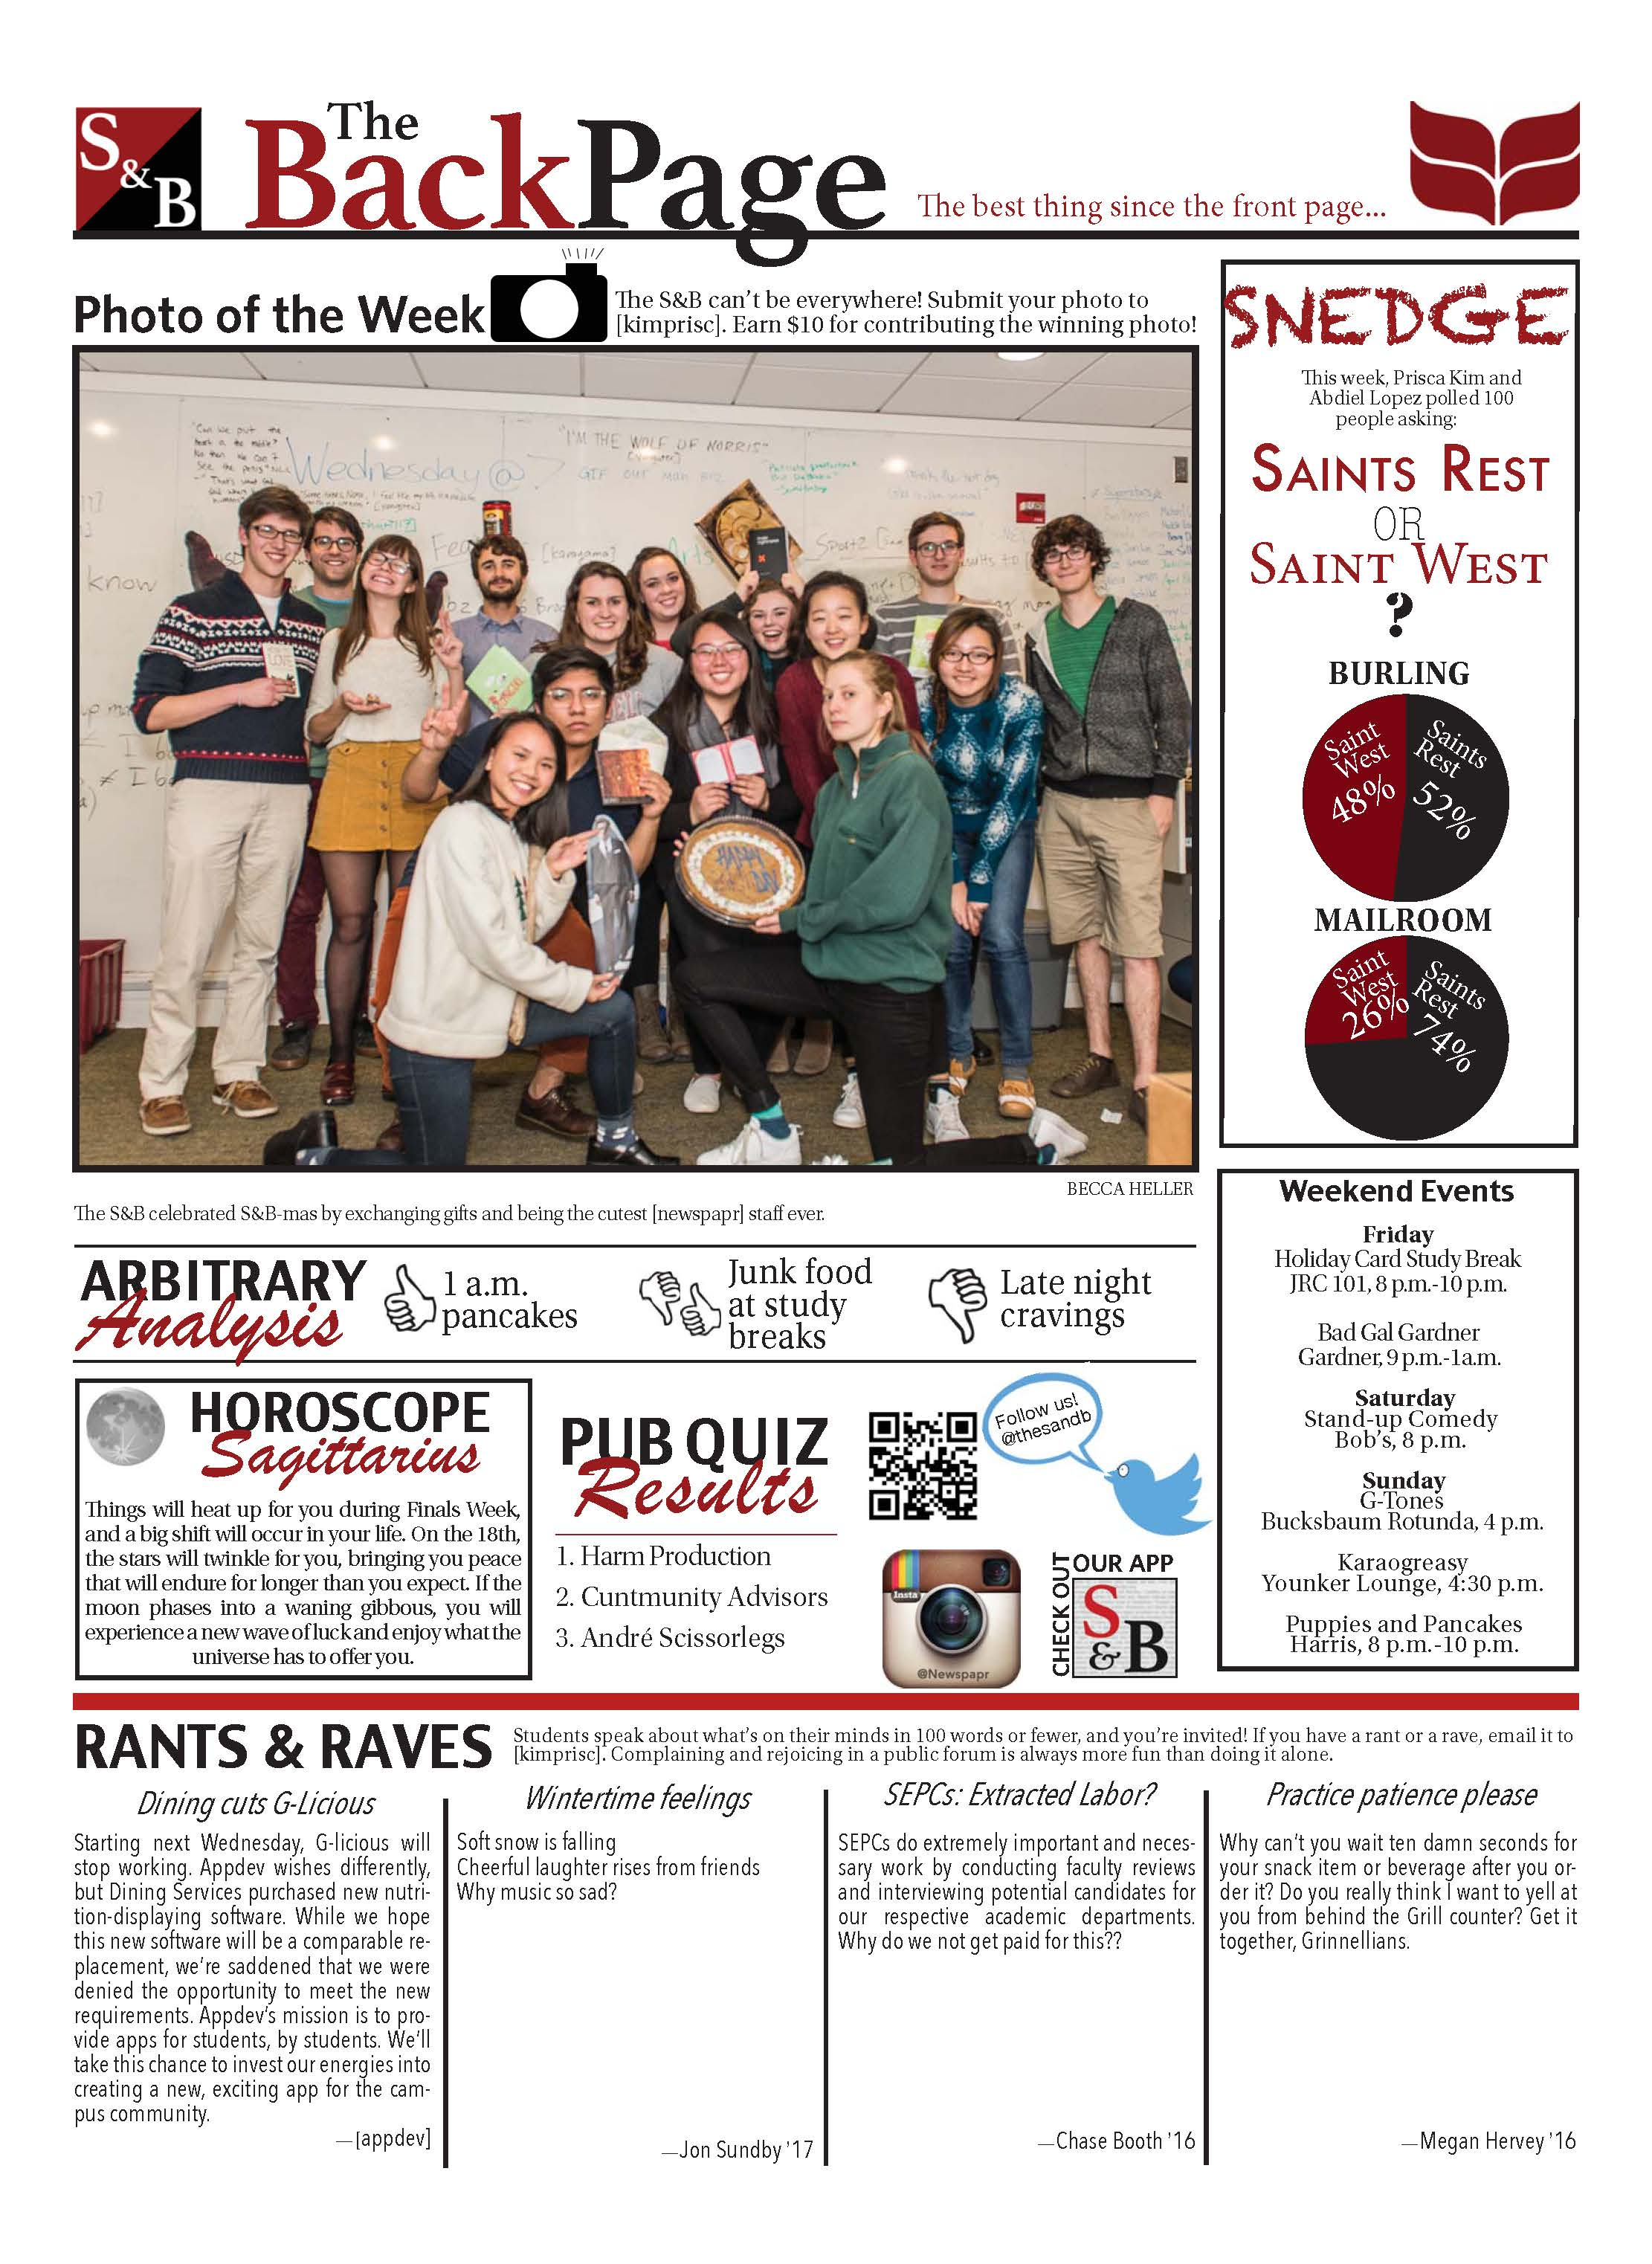 Opinions 11.20.15_Page_3